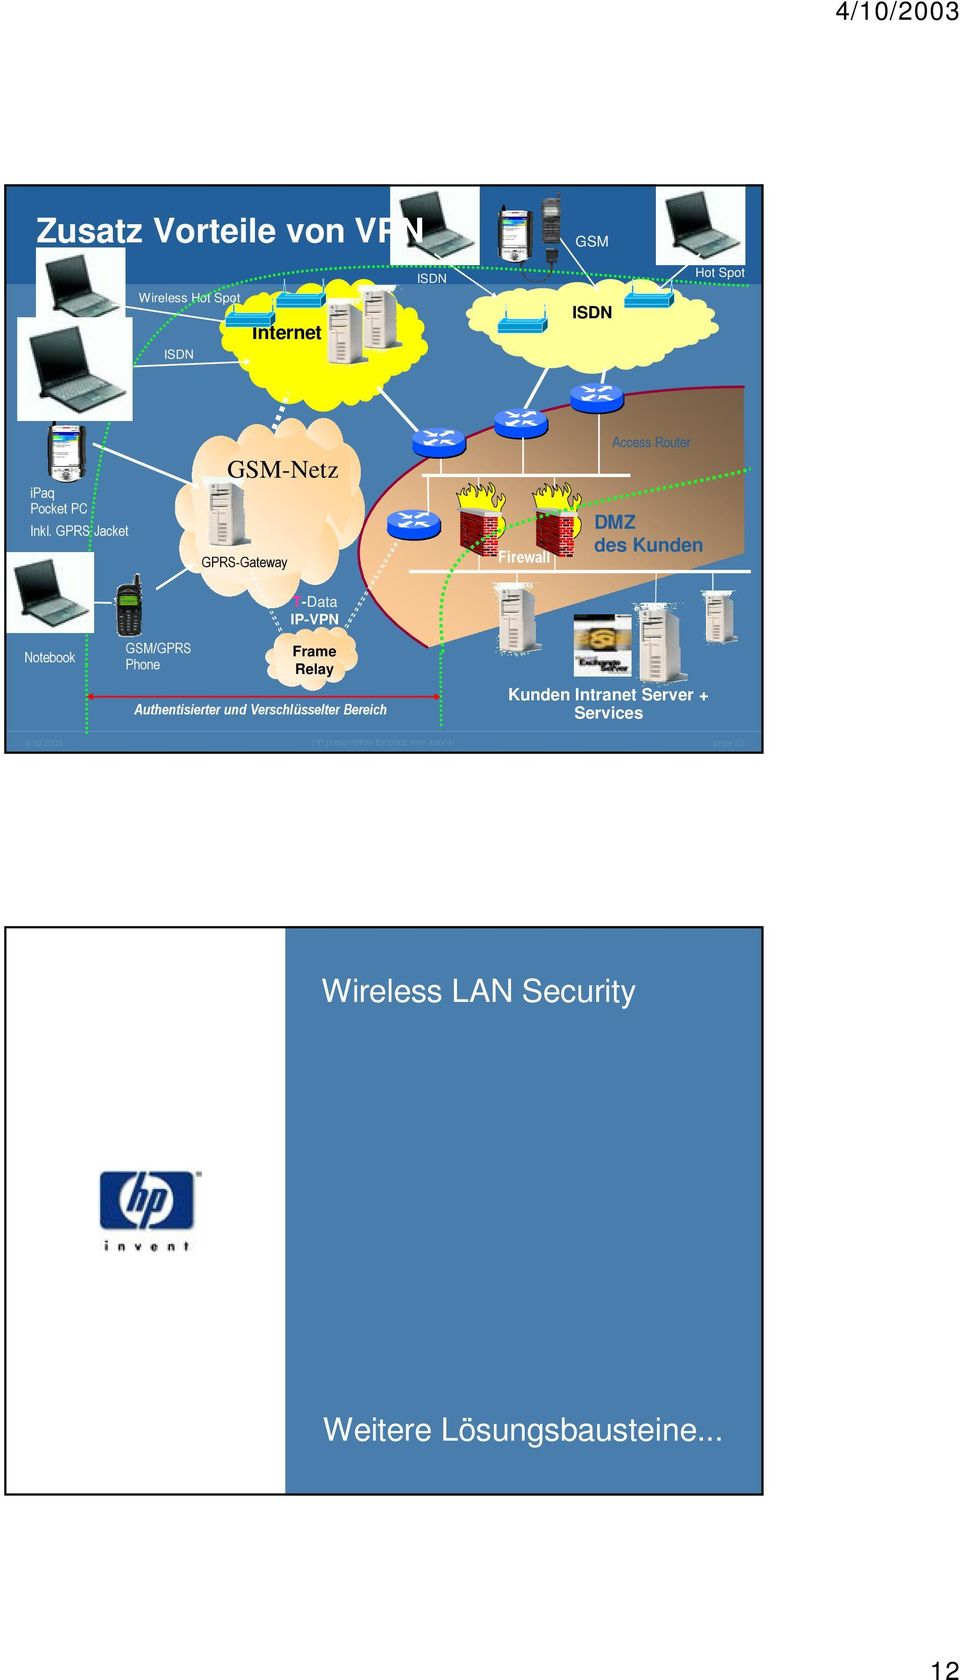 GPRS Jacket GSM-Netz GPRS-Gateway Firewall Access Router DMZ des Kunden T-Data IP-VPN